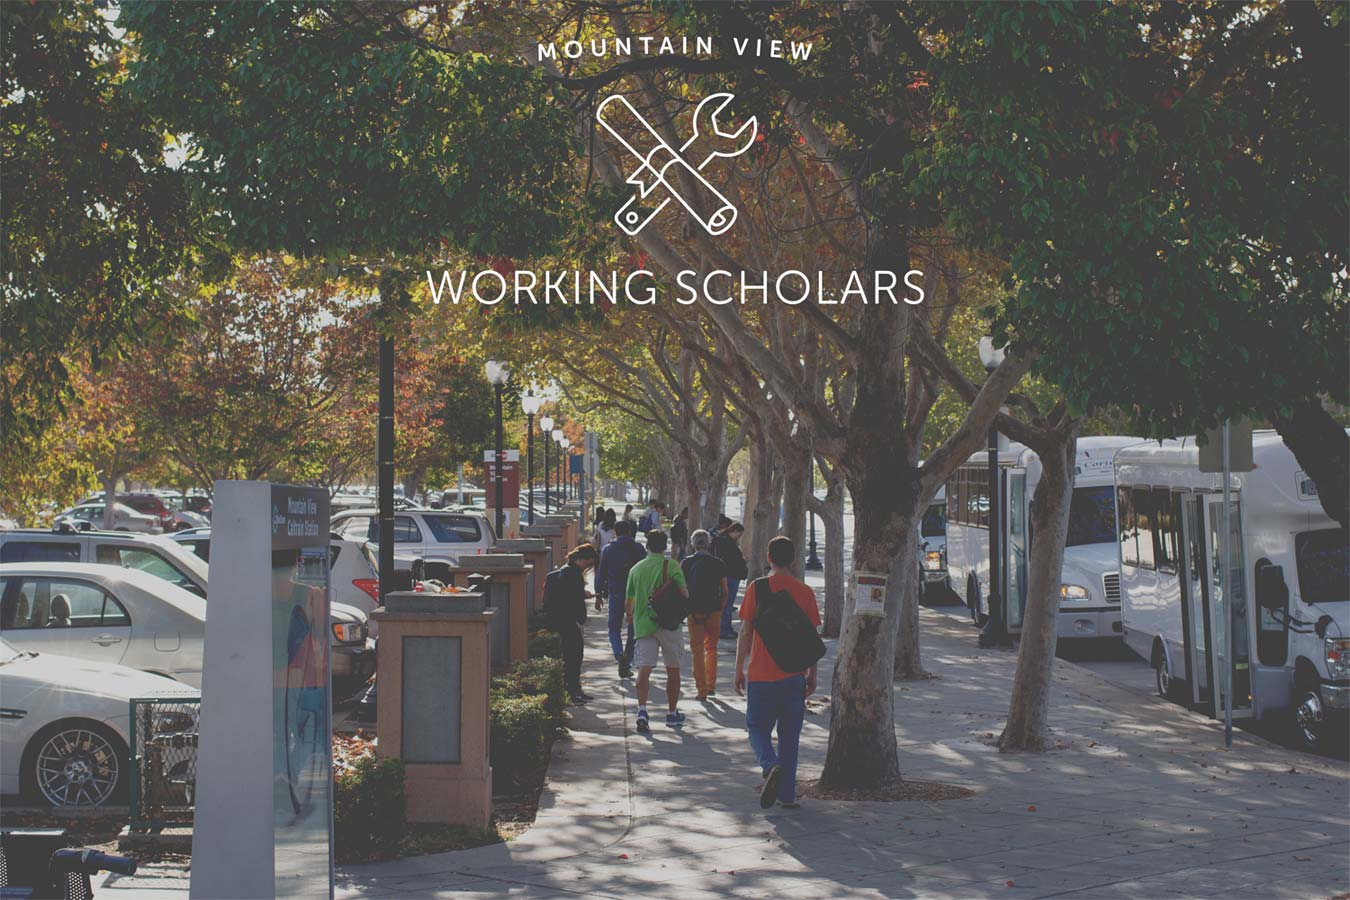 Mountain View Working Scholars Cost Analysis